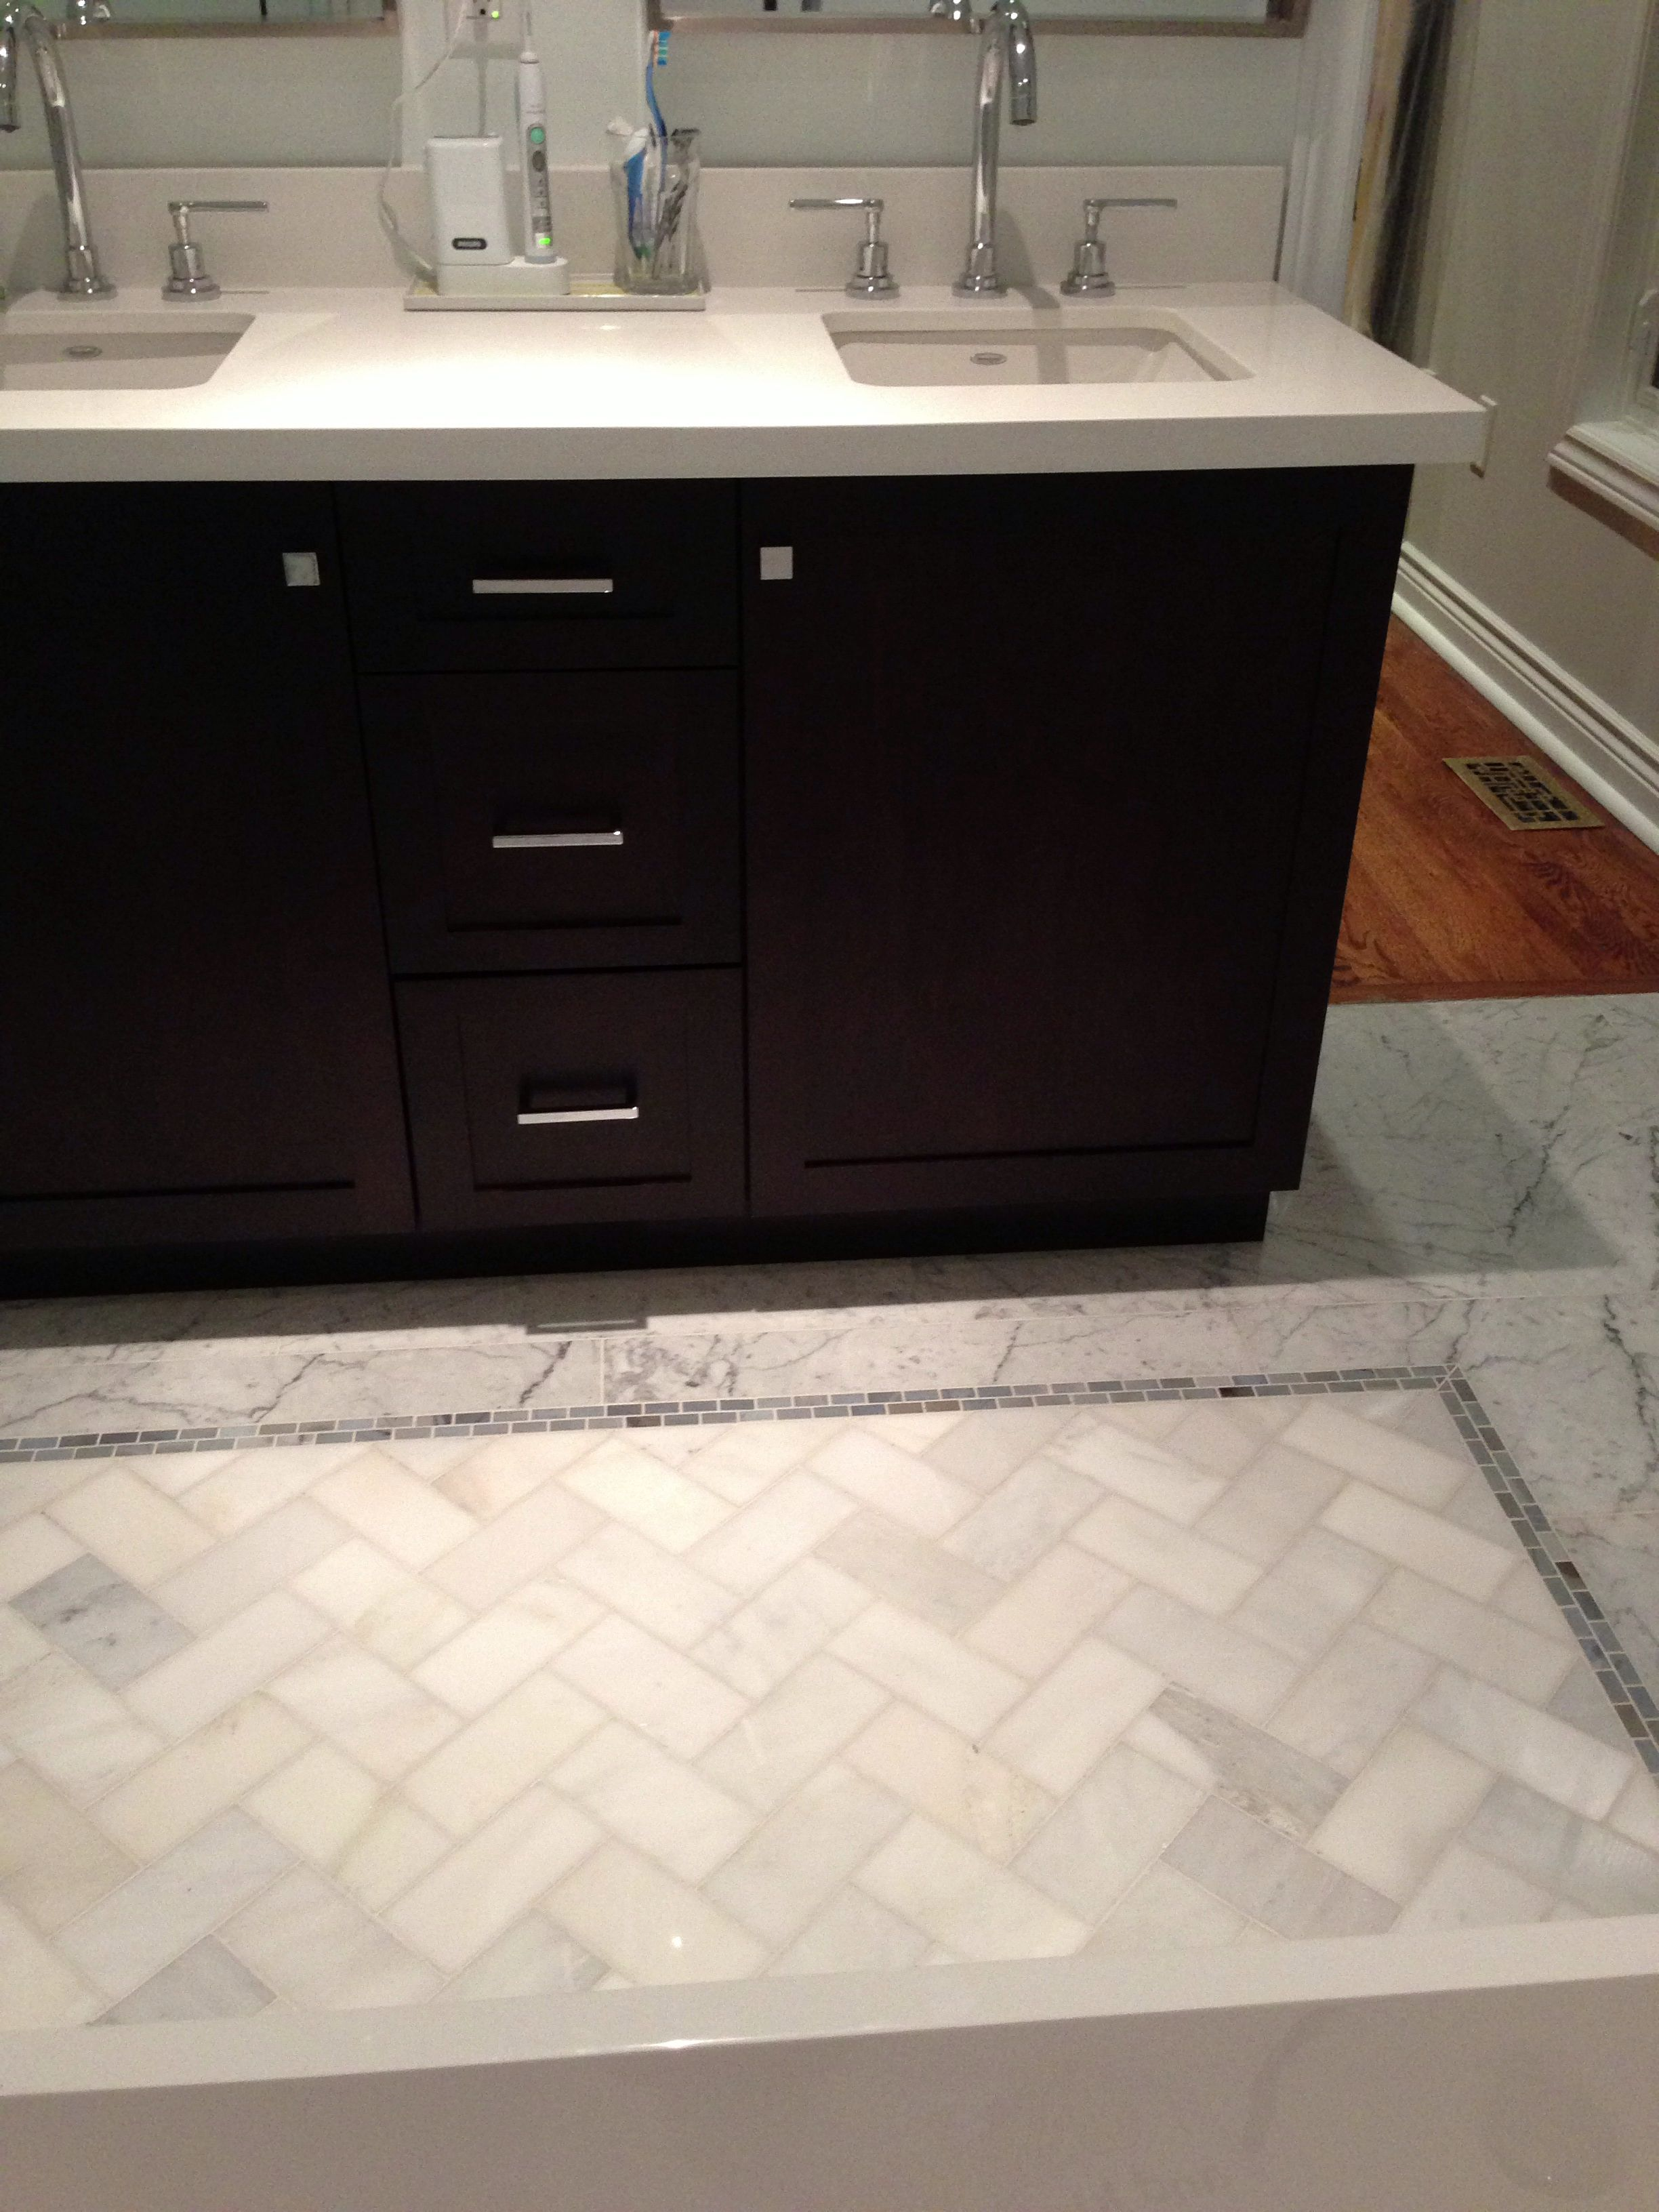 Floor Tile Rug From Carrera 3x6 In Herringbone Pattern And 1x2